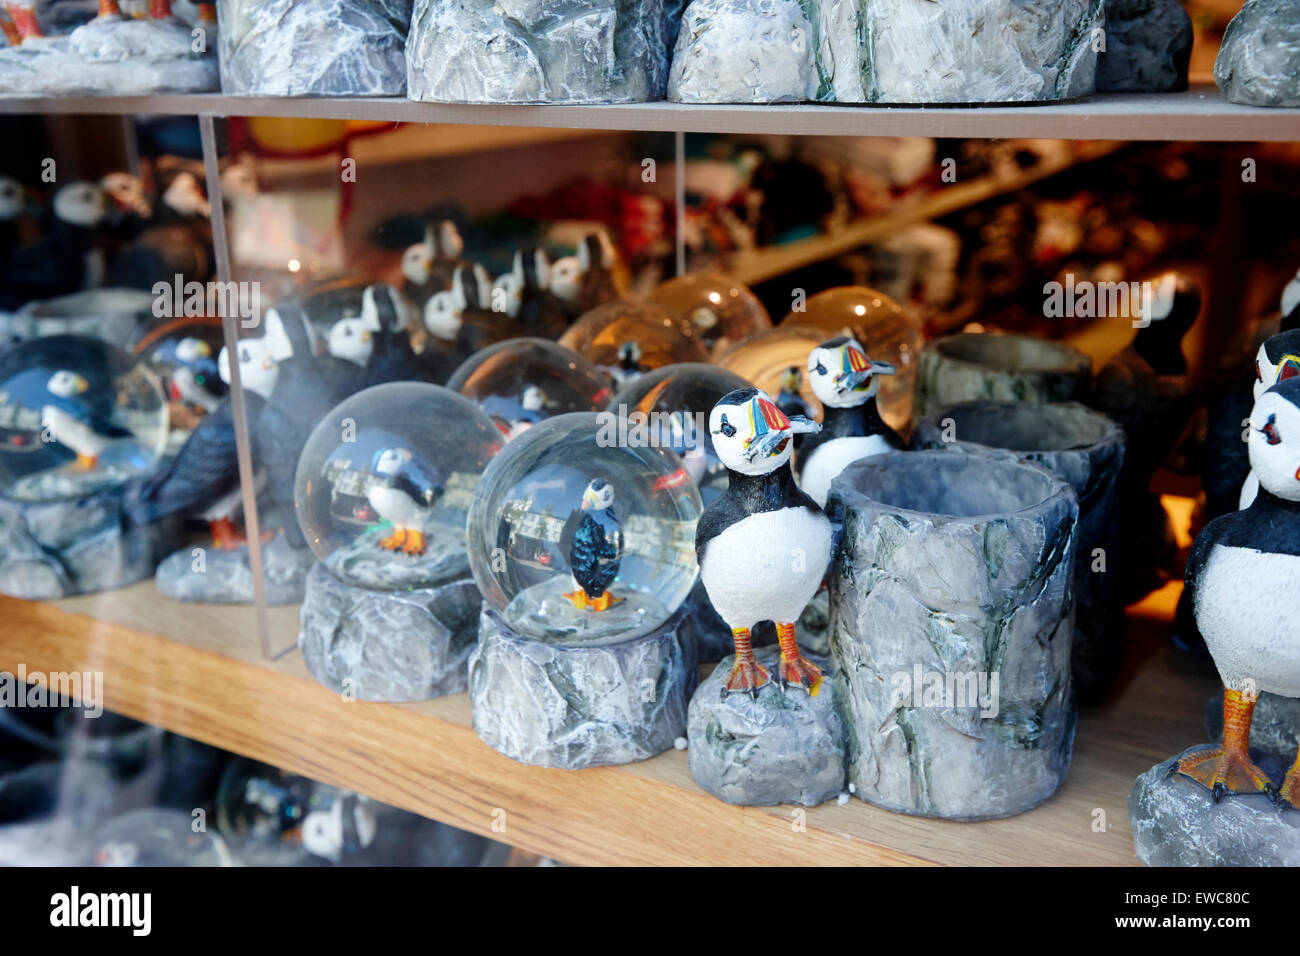 puffin souvenirs gifts and snowglobes Reykjavik iceland - Stock Image